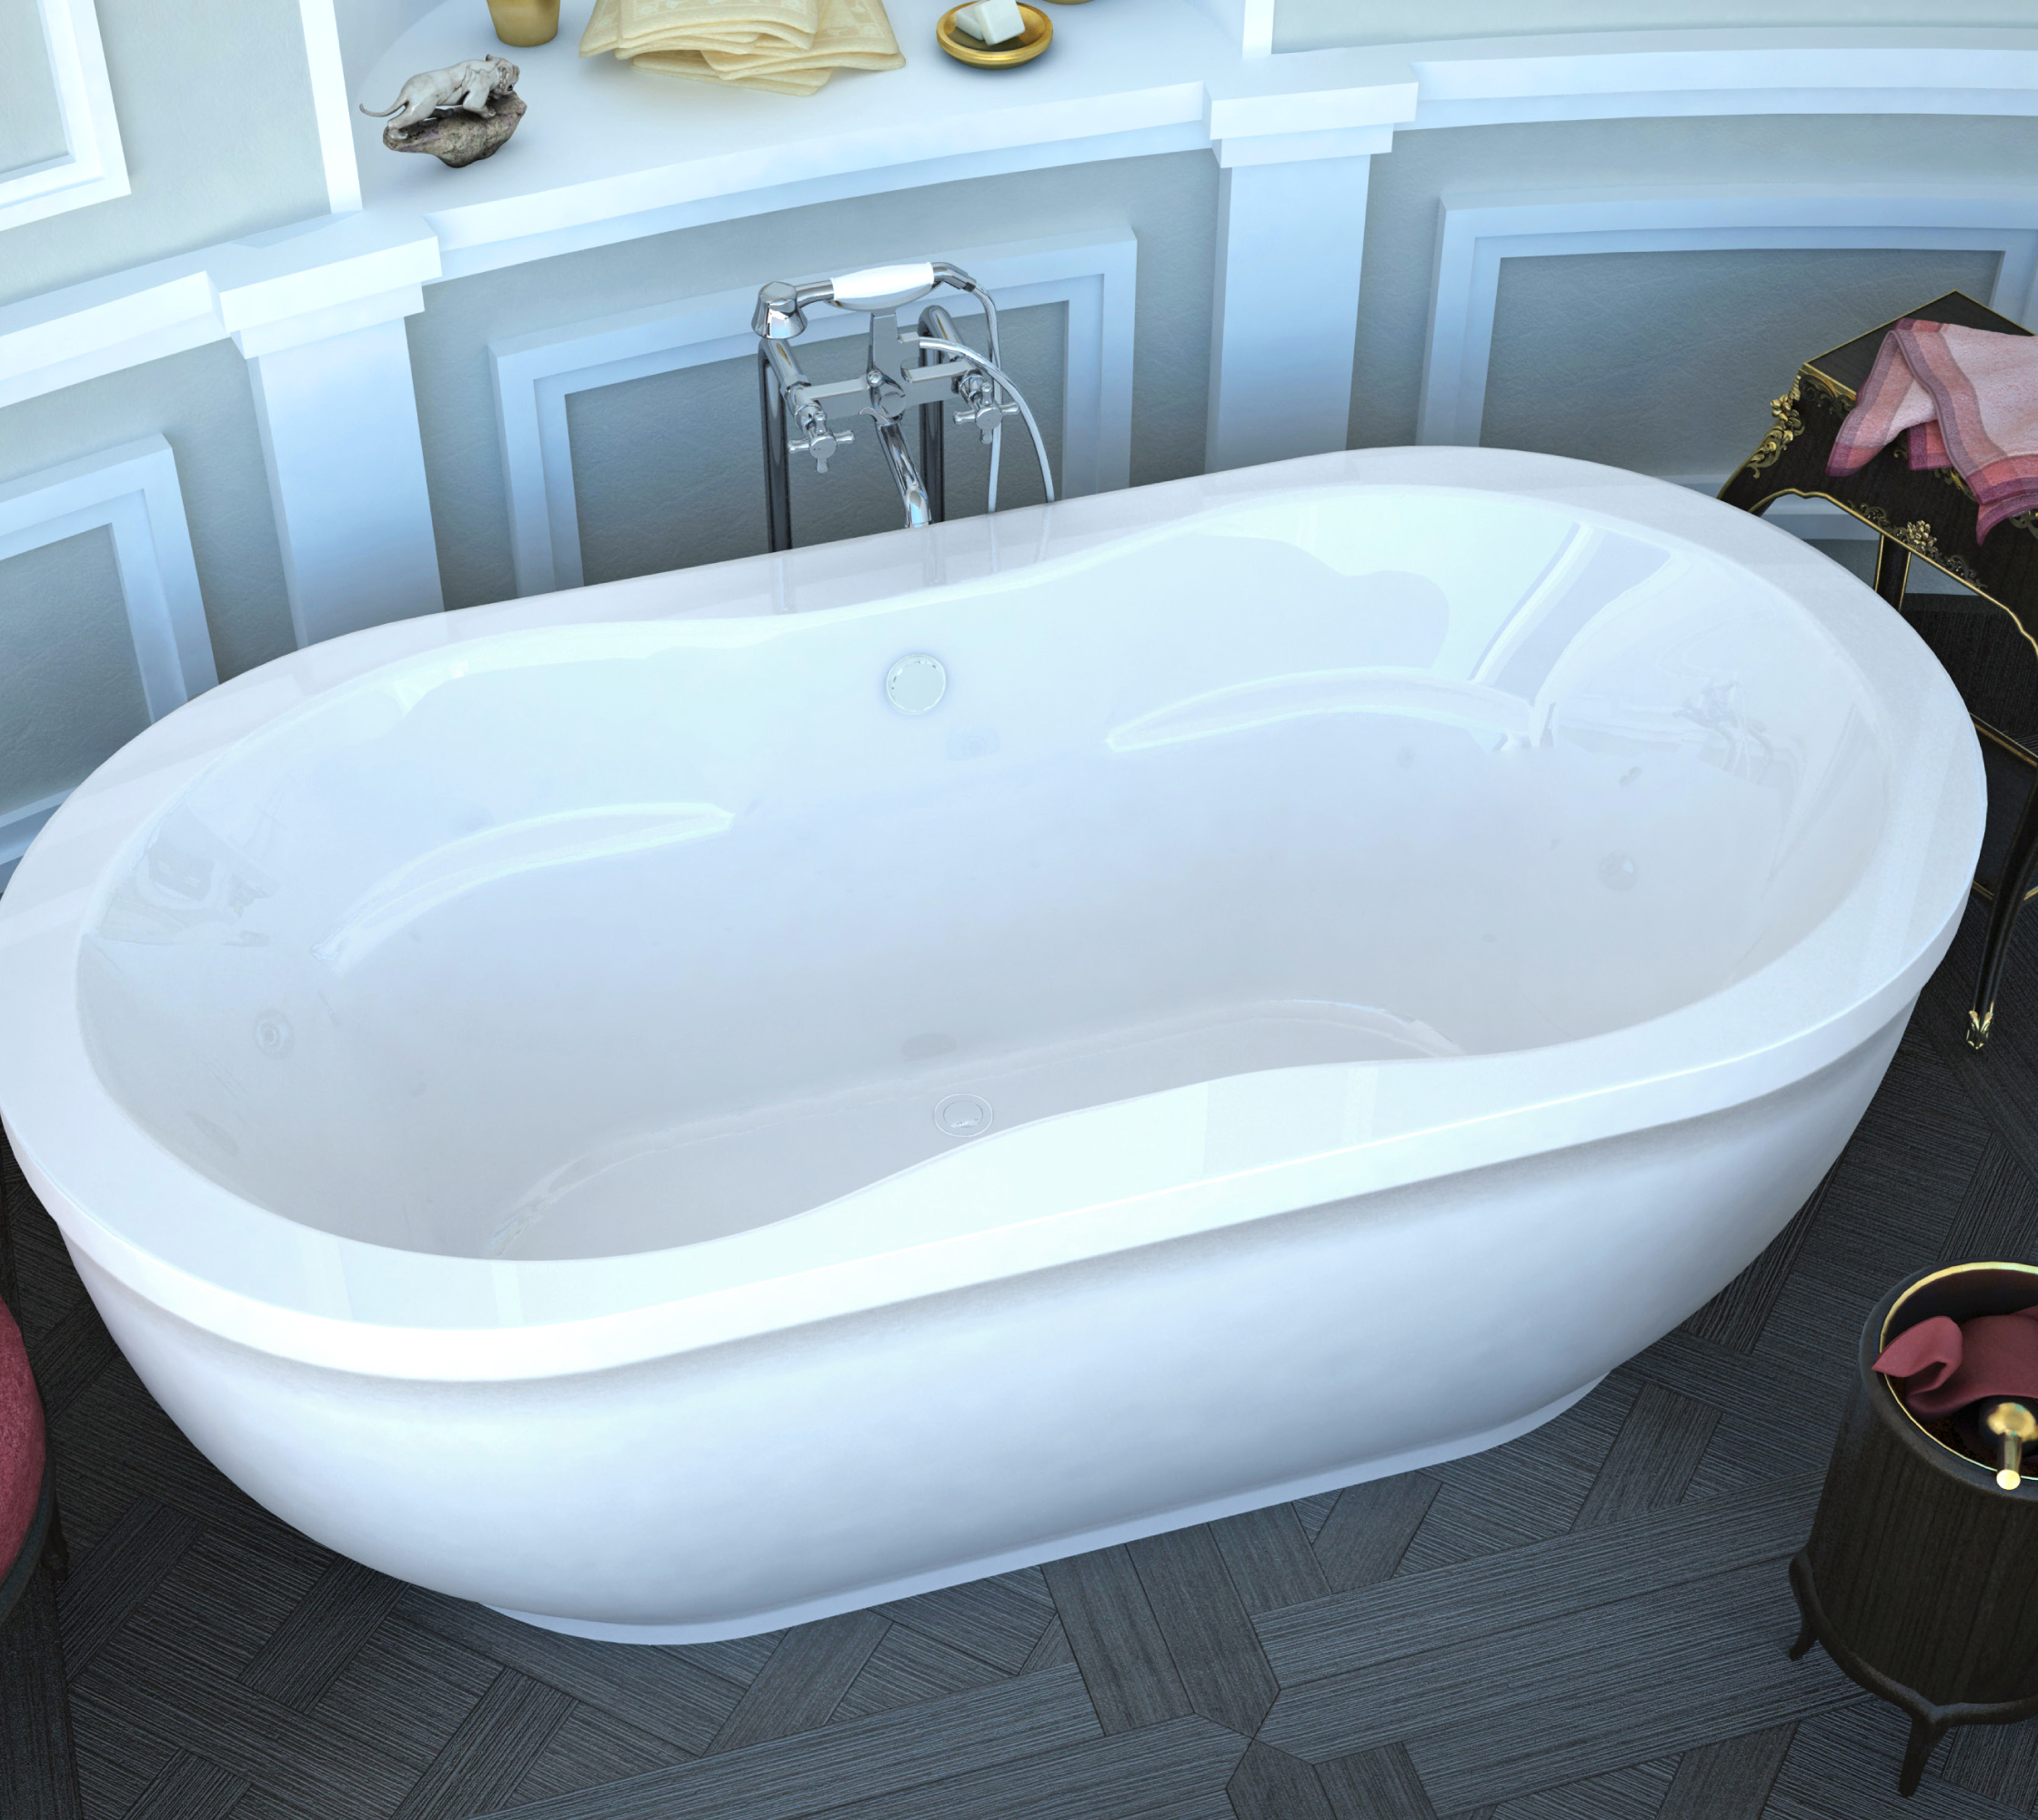 Freestanding Tubs - Soaking Tubs - Bathtubs